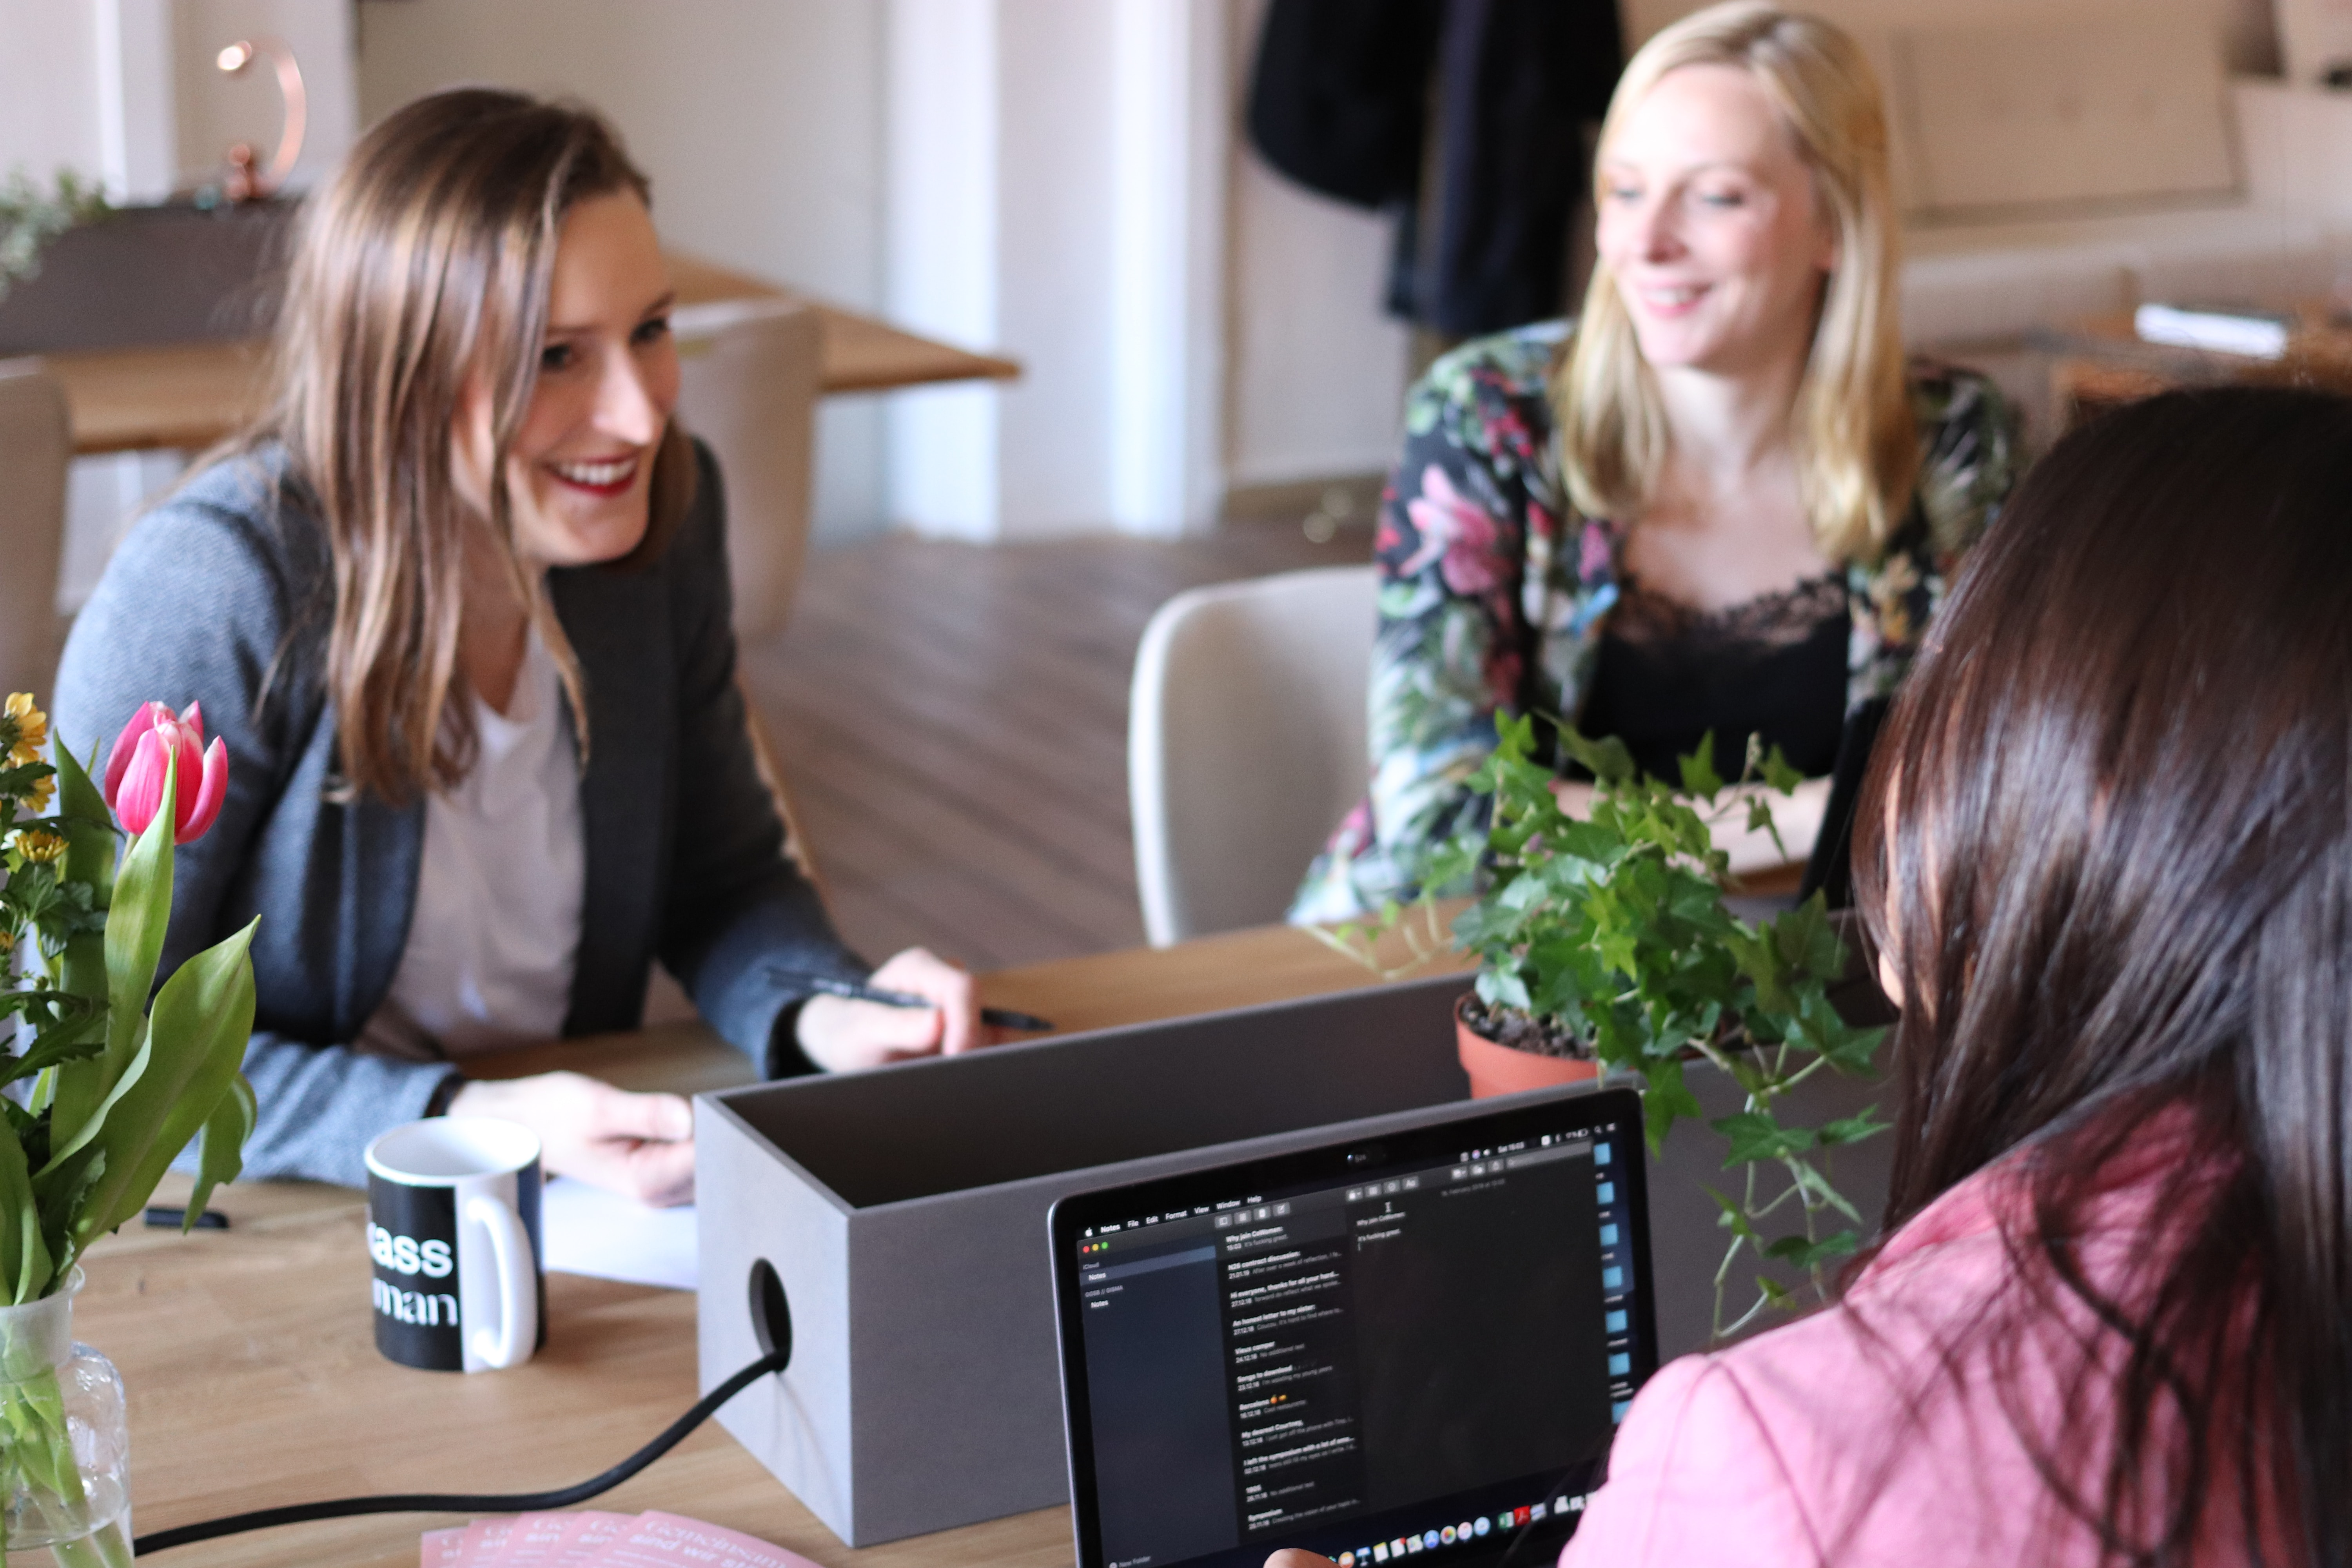 Women coding software in a coworking space